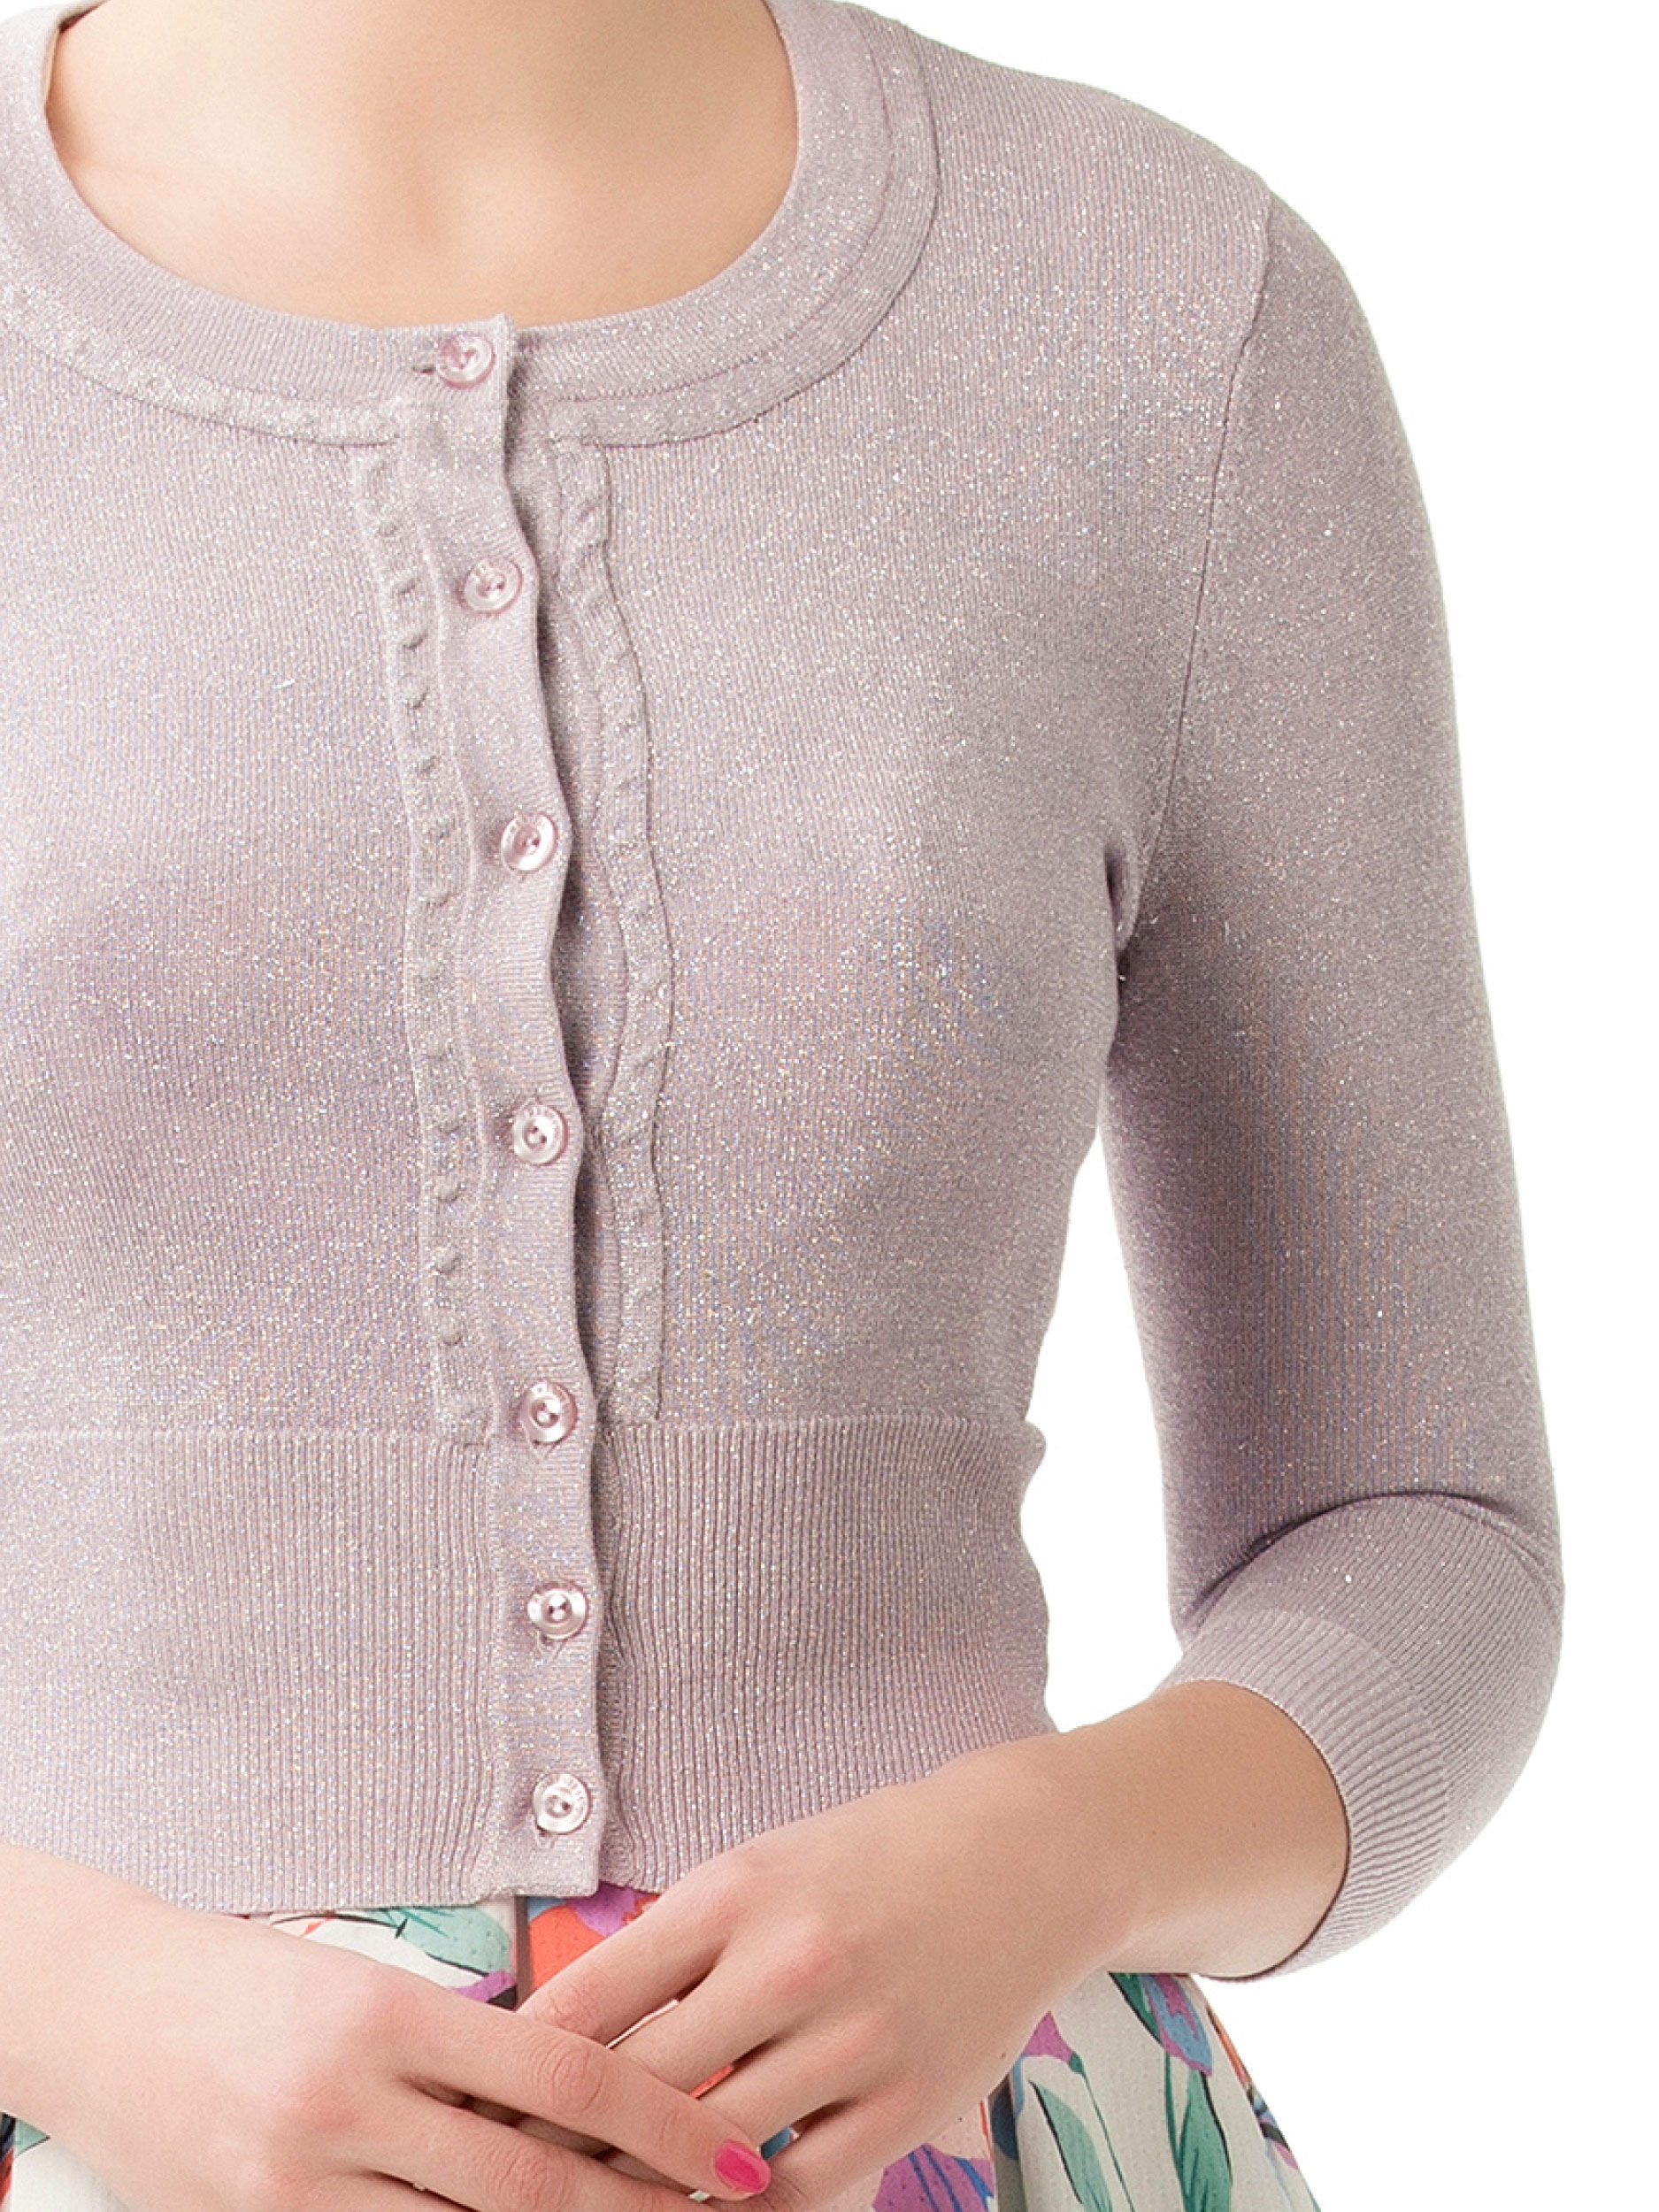 Chessie Shimmer 3/4 Sleeve Cardi